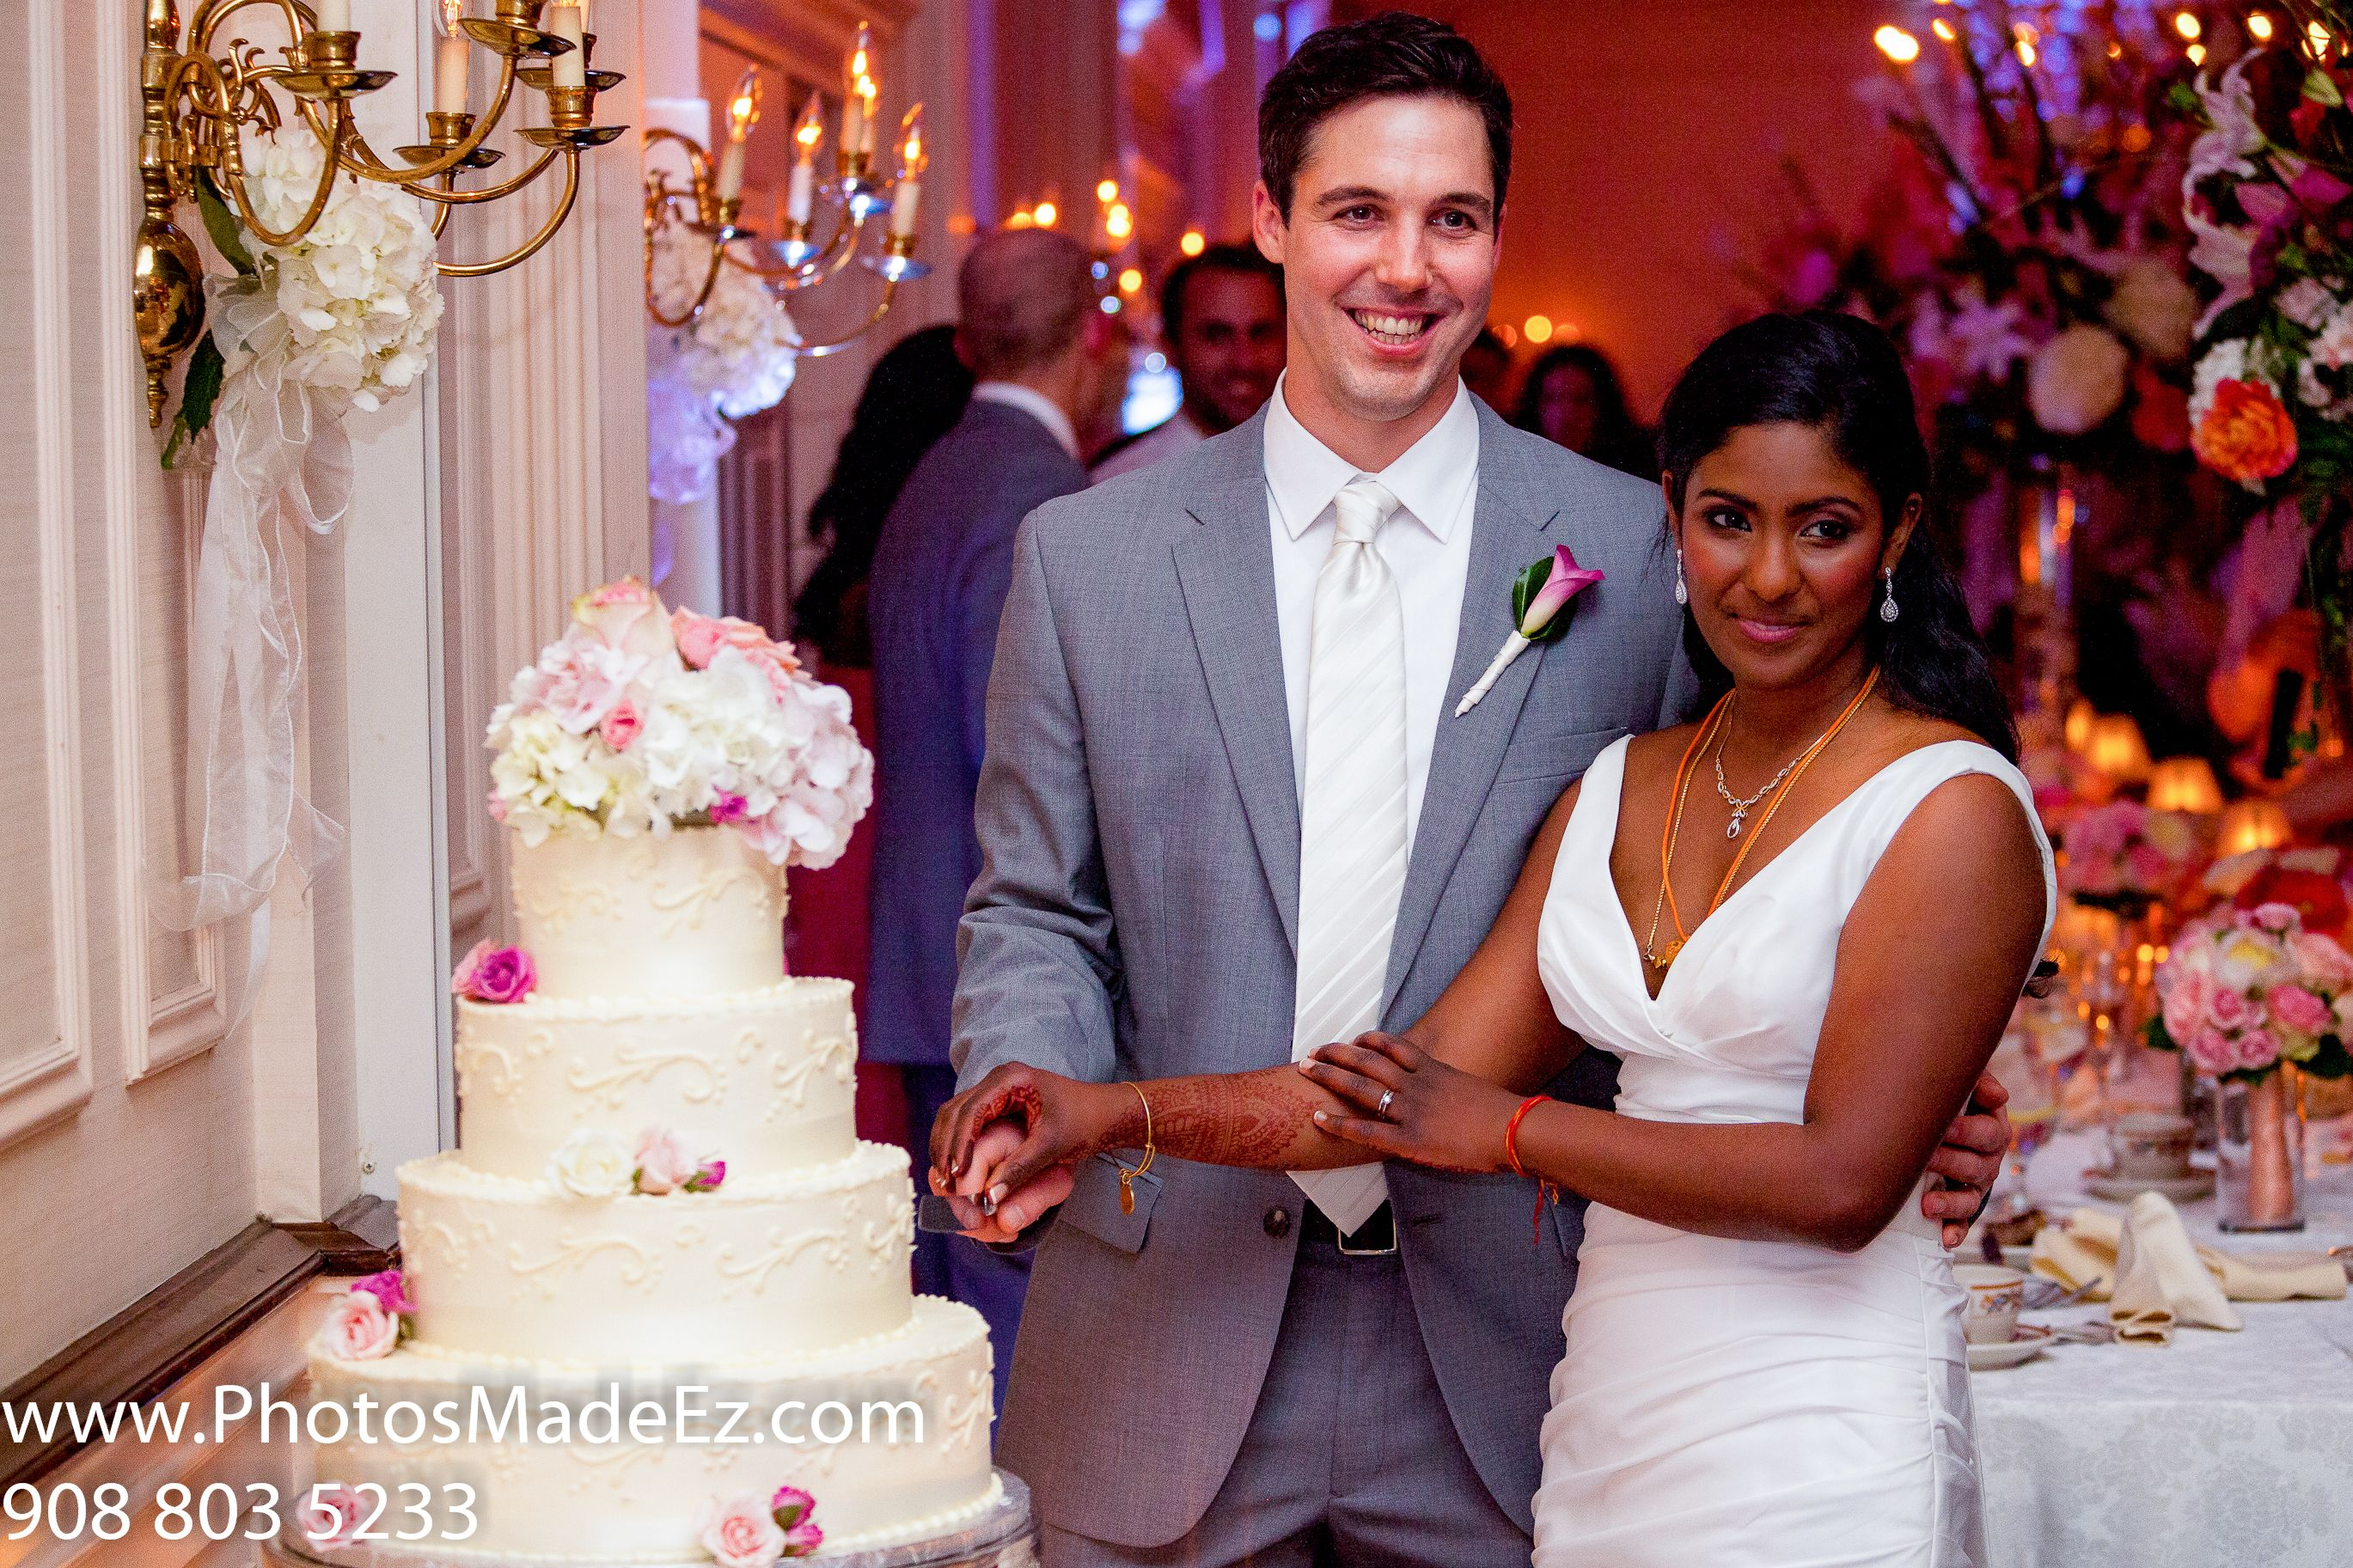 Fusion Wedding South Indian American In The Desmond Albany Ny With Kris Royal Weddings As Coordinators Make Up Artist Leena Decor By Total